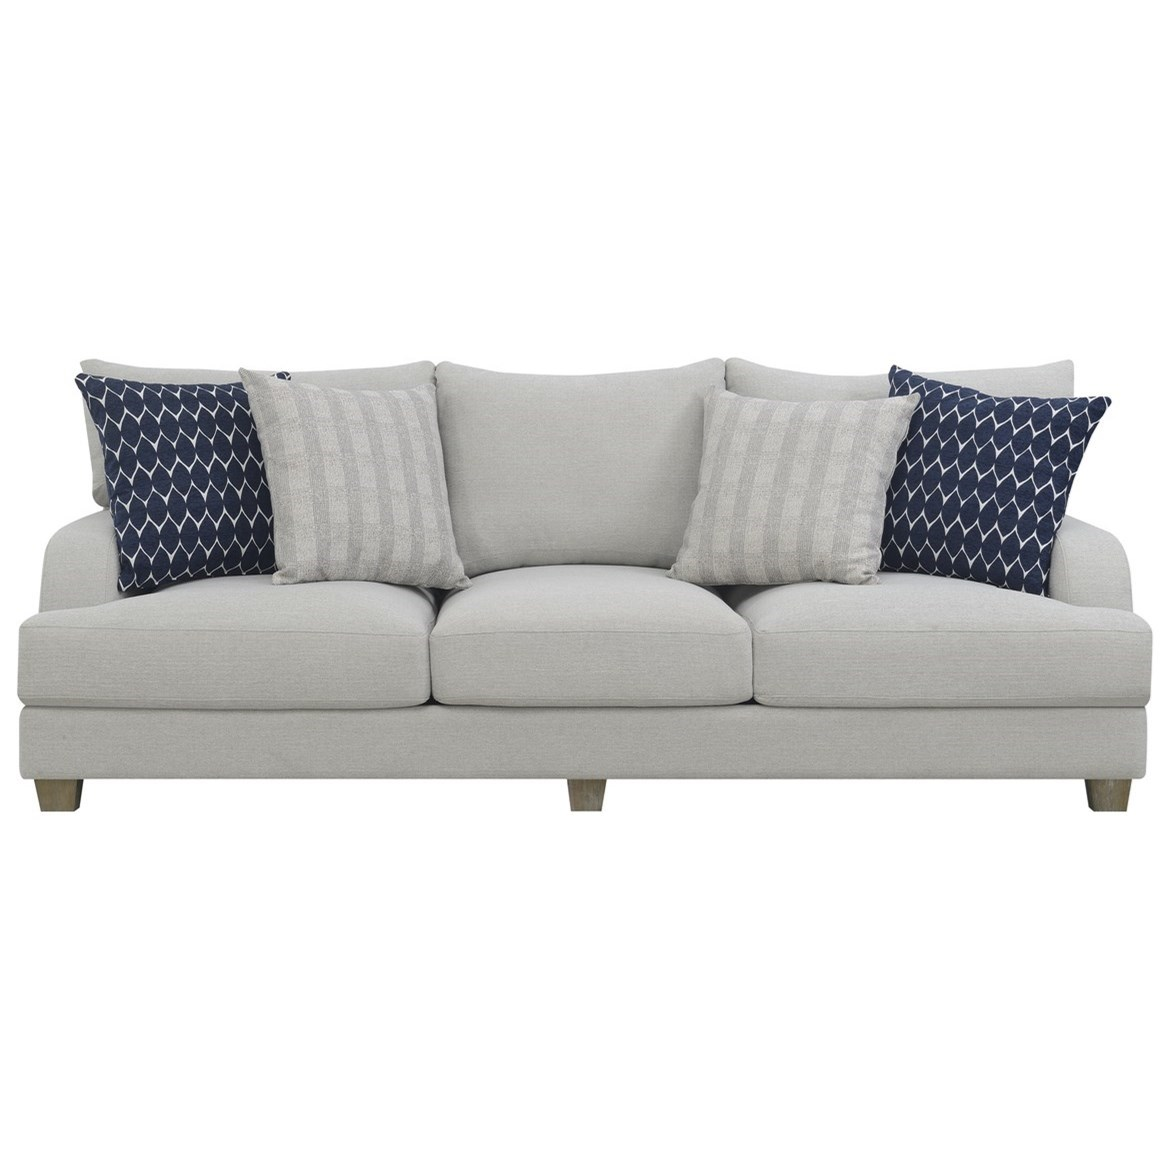 Laney Sofa by Emerald at Wilson's Furniture